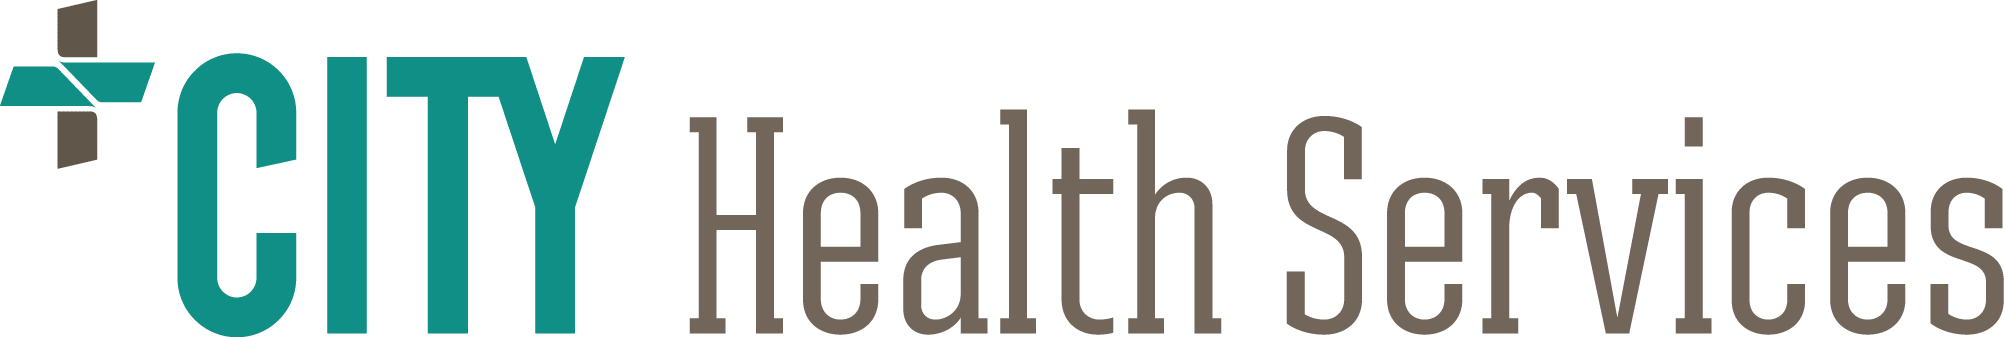 CITY Health Services Rebrand